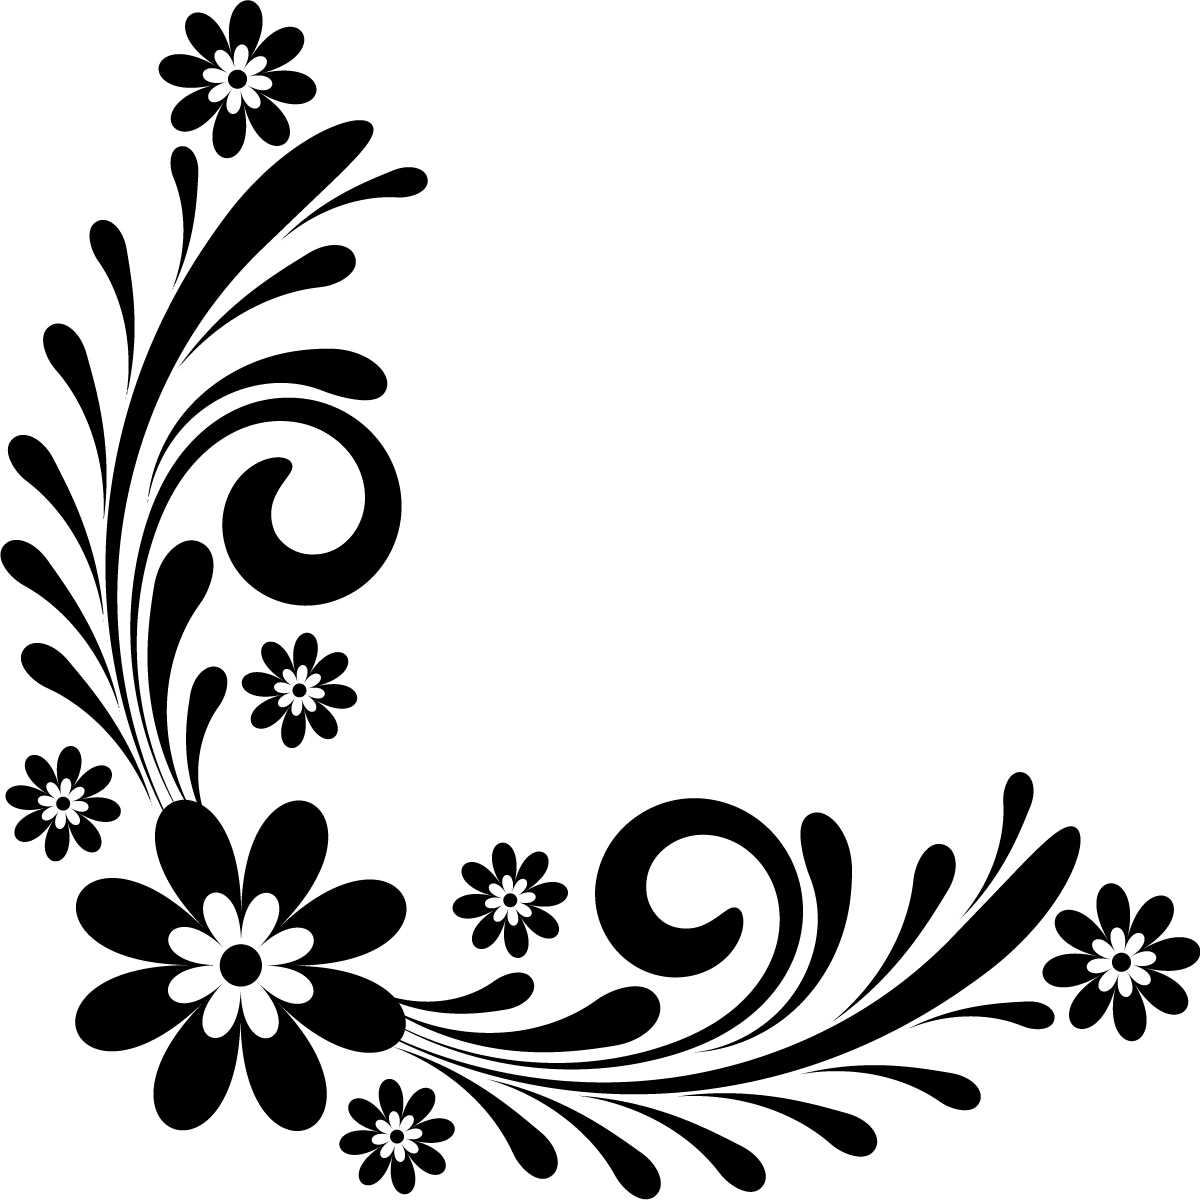 1200x1200 Page Border Designs Flowers Black And White